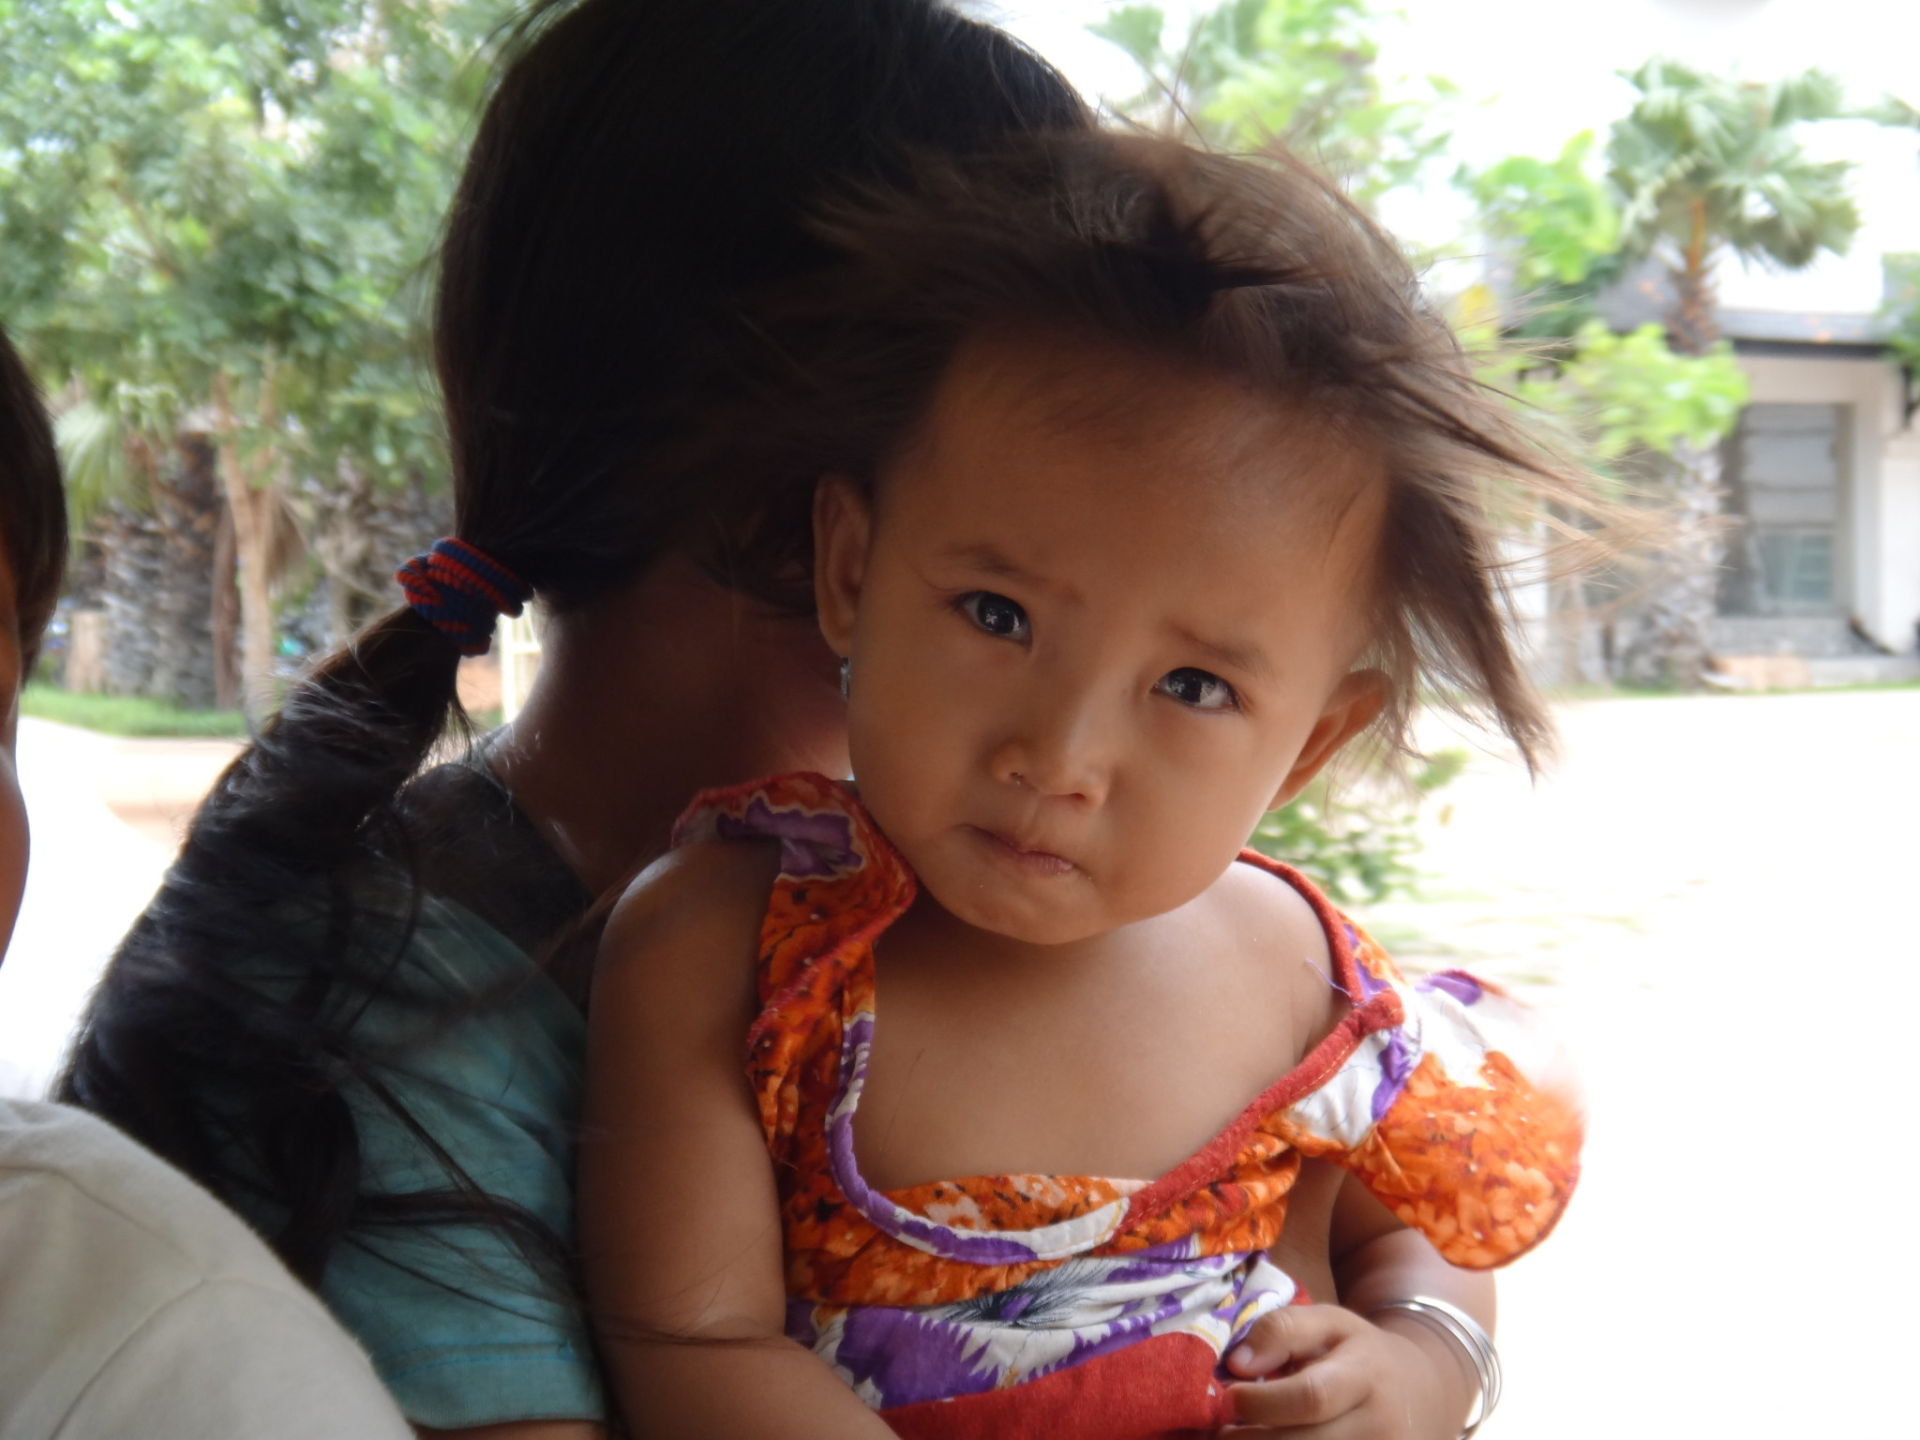 The crying eyes of a baby that doesn't get the nutrition she needs to grow properly is heart breaking. Did you know that a child who suffers from malnutrition will grow 30-40% less brain capability? Siem Reap, Cambodia.